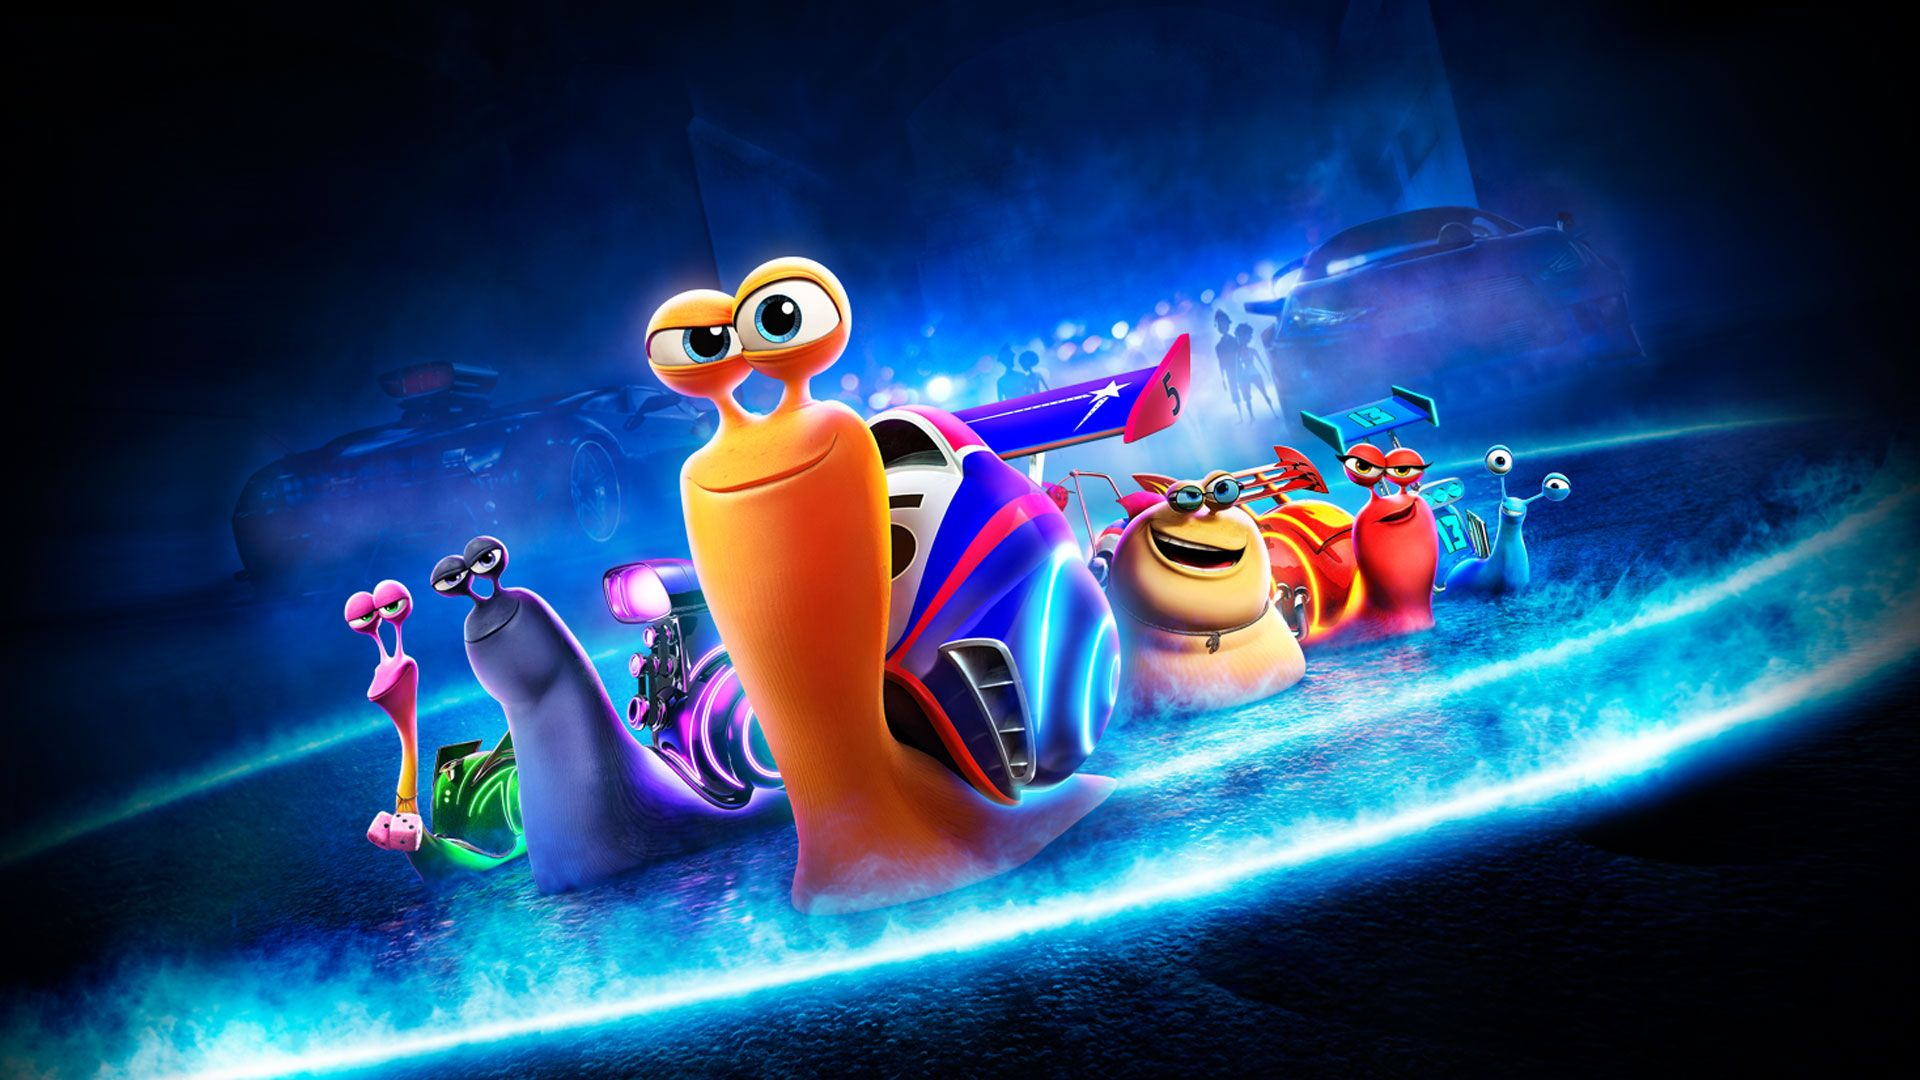 Turbo movie wallpaper hd wallpapers httpwhatstrendingonline turbo movie wallpaper hd wallpapers httpwhatstrendingonlineturbo voltagebd Images